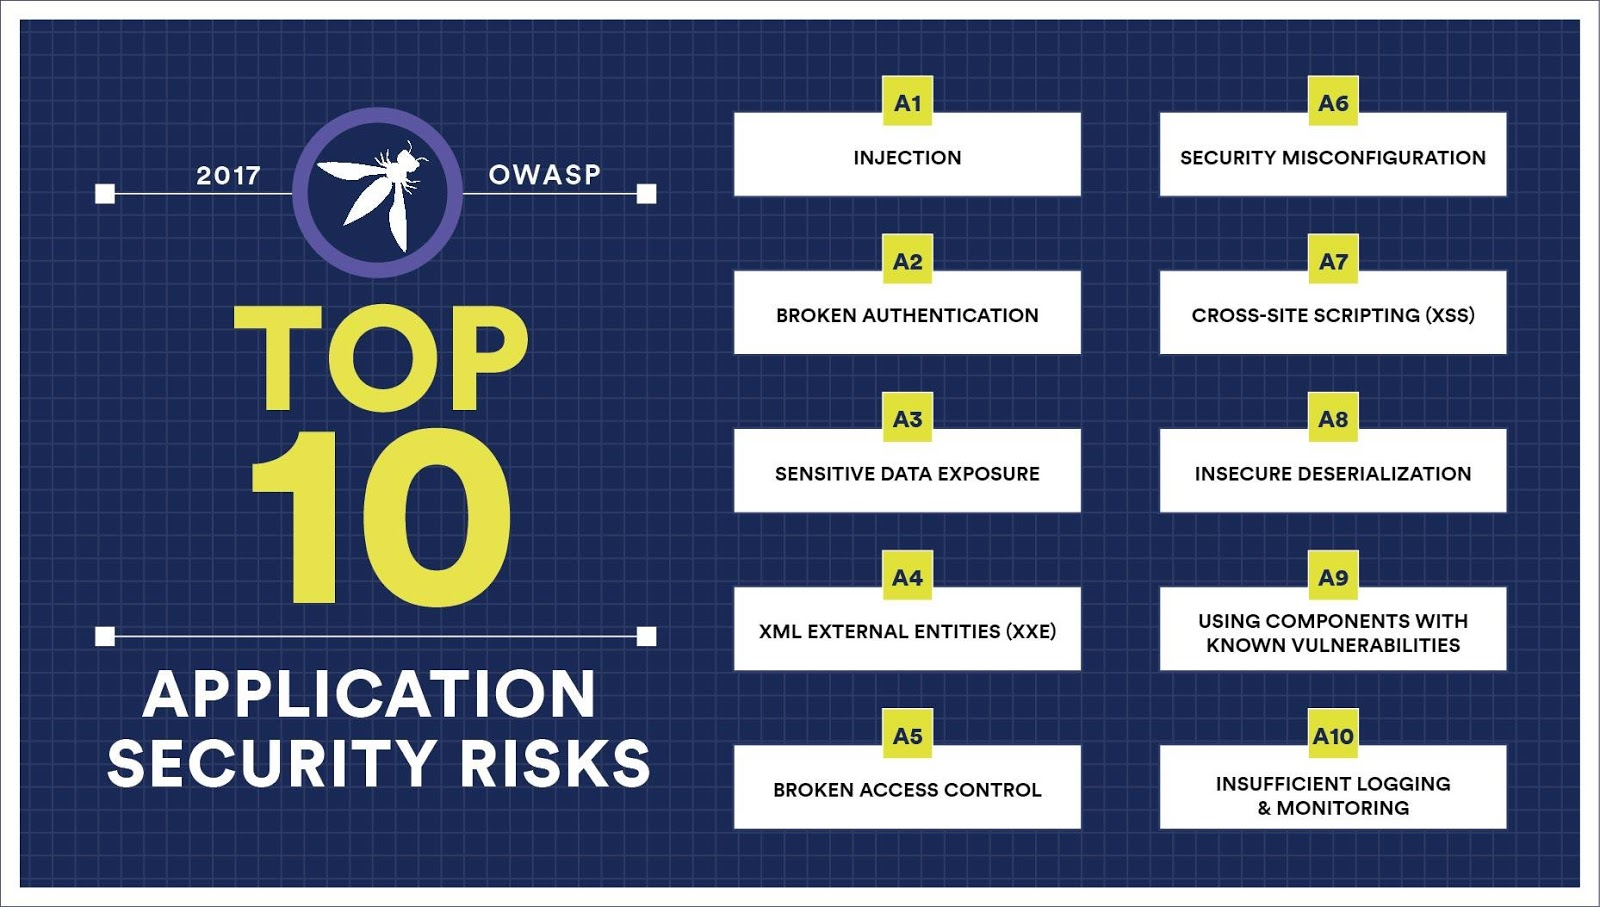 The Top 10 Application Security Risks